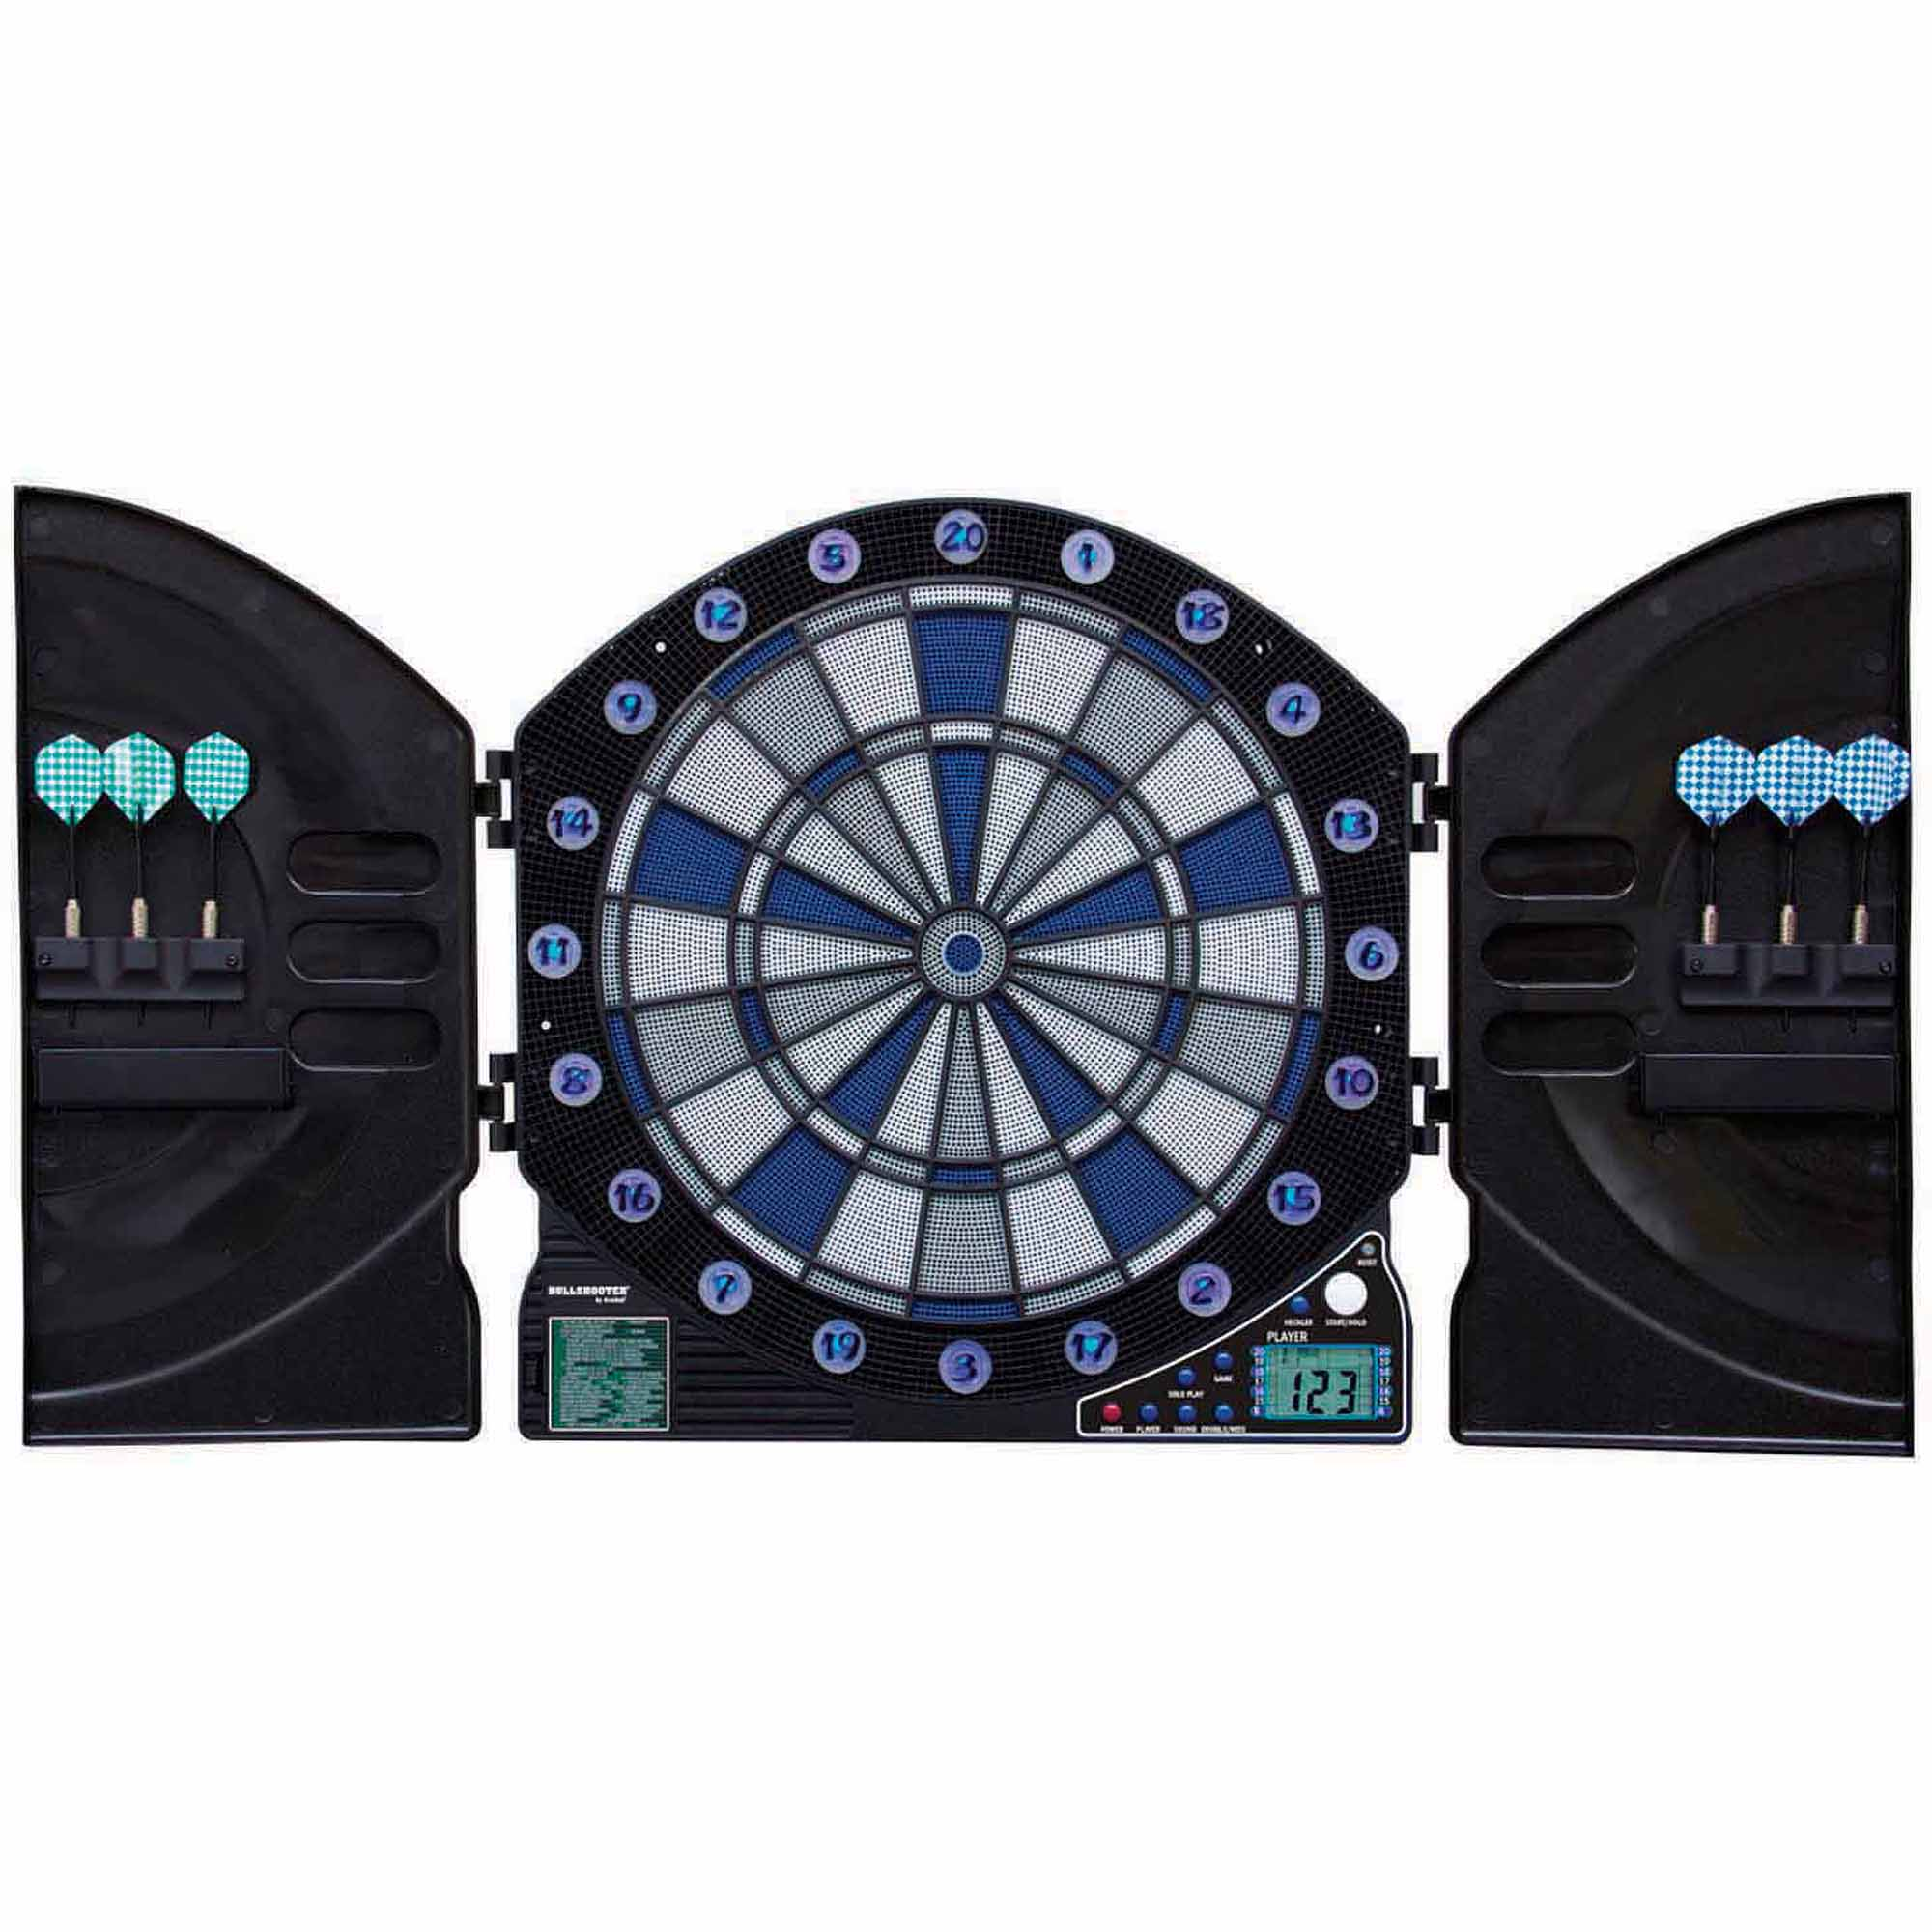 Bullshooter Illuminator 3.0 Electronic Dart Board by Escalade